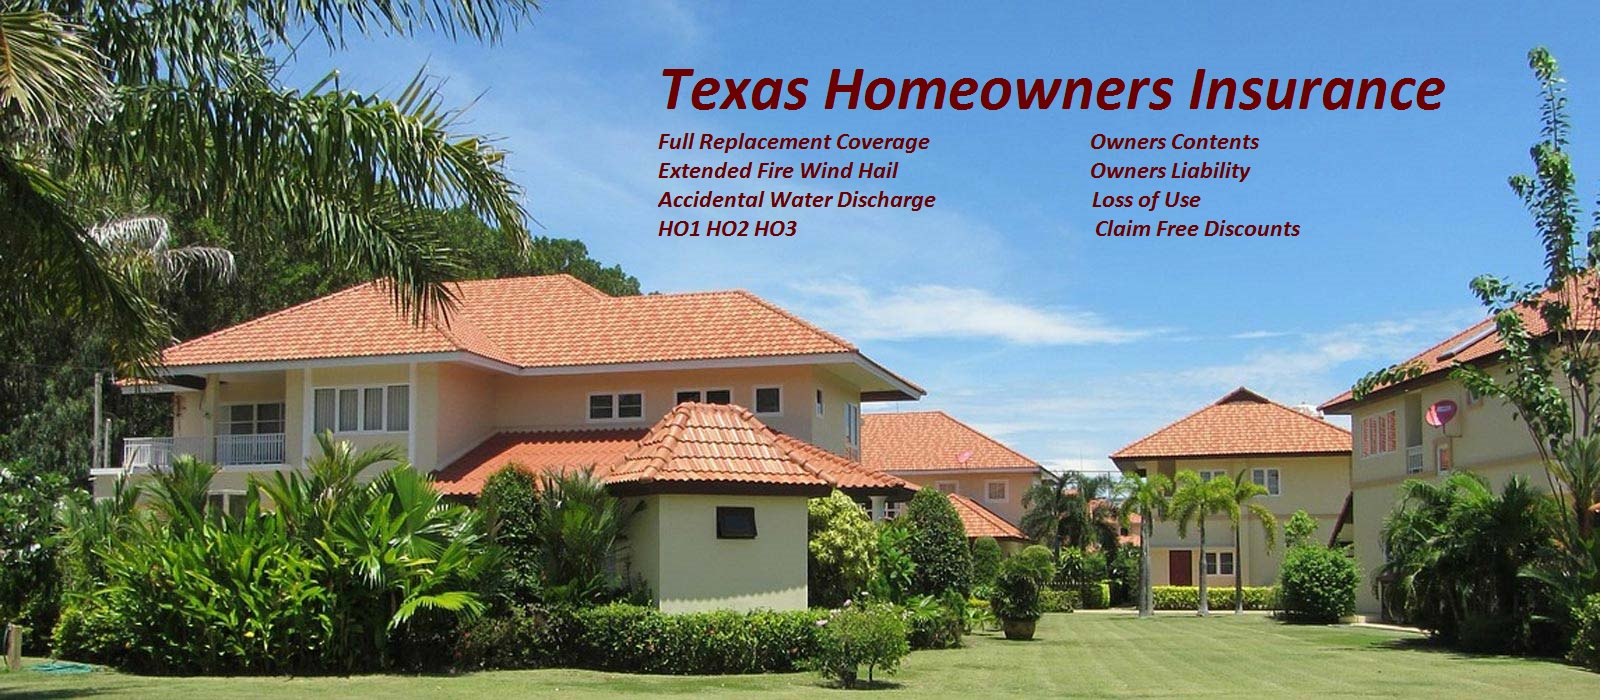 Homeowners Insurance in Texas TX